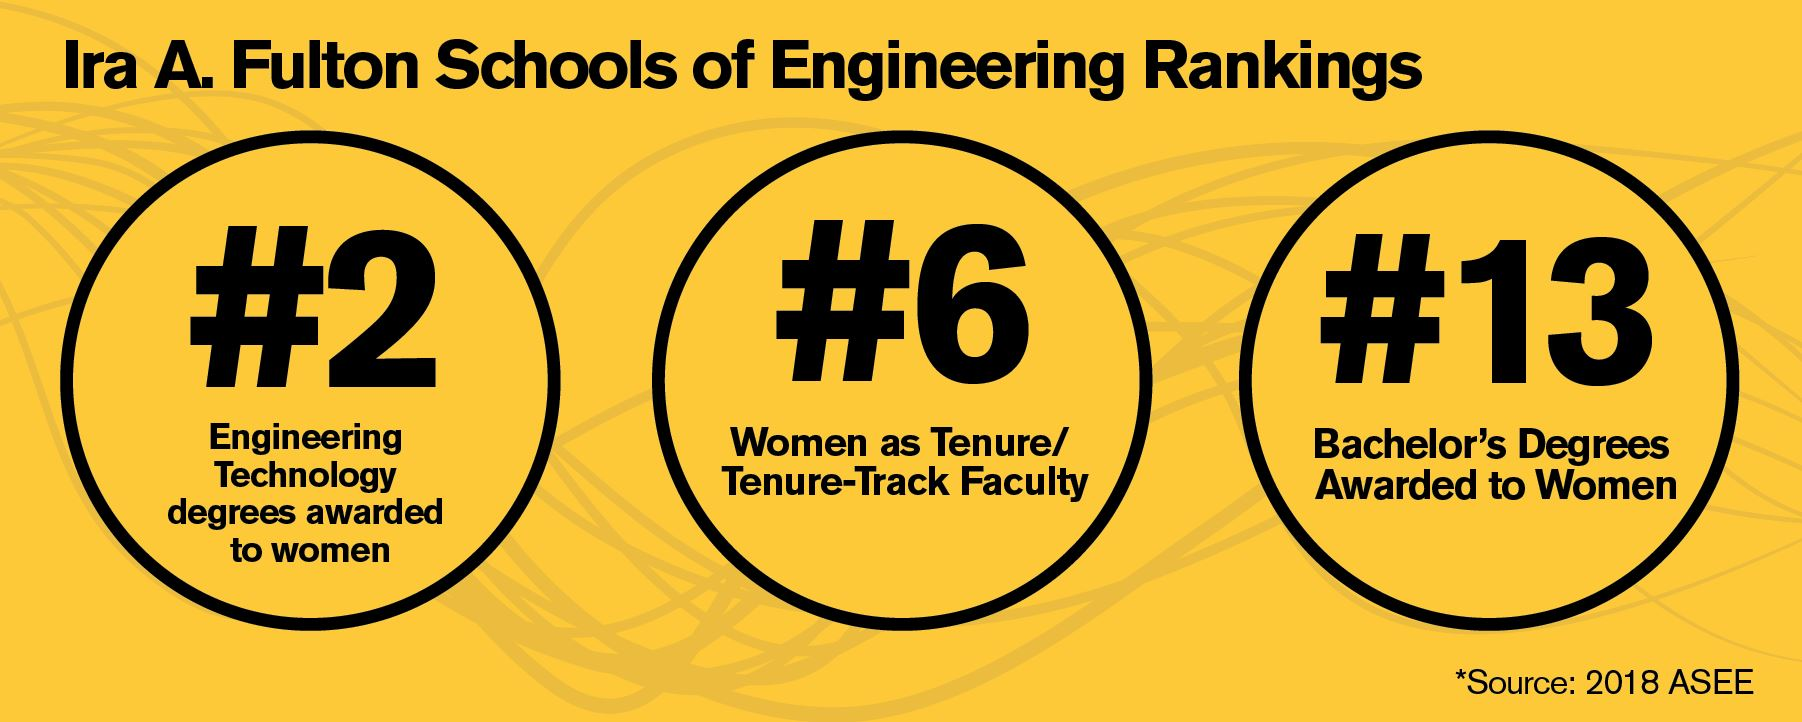 2018 ASEE rankings for women in engineering at ASU: 1. #2 in technology degrees awarded to women 2. #6 in women as tenured/tenure-track faculty and 3. #13 in bachelor's degrees awarded to women